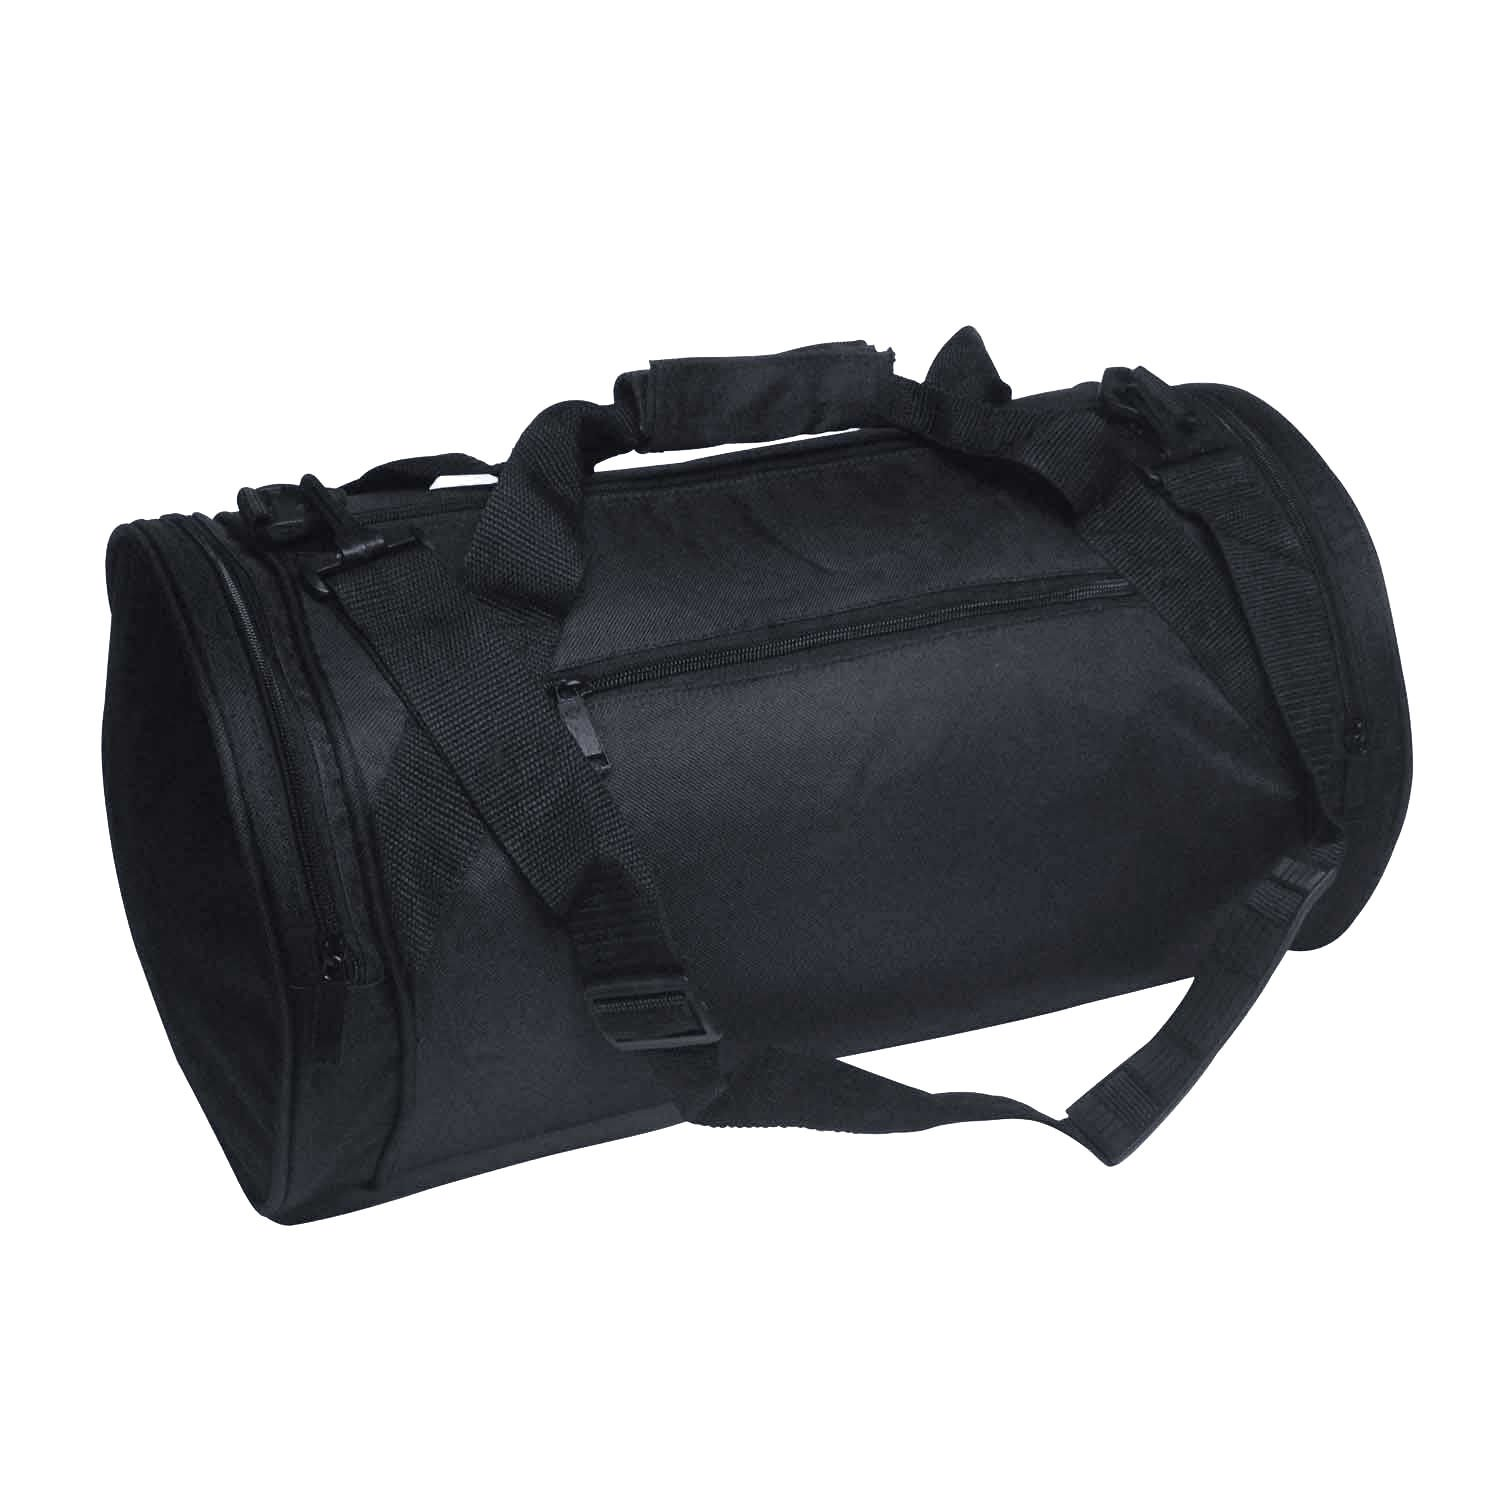 Carry-on Luggage Bag 18 Dufflel Duffle Bag ImpecGear Roll Bag Travel Bag